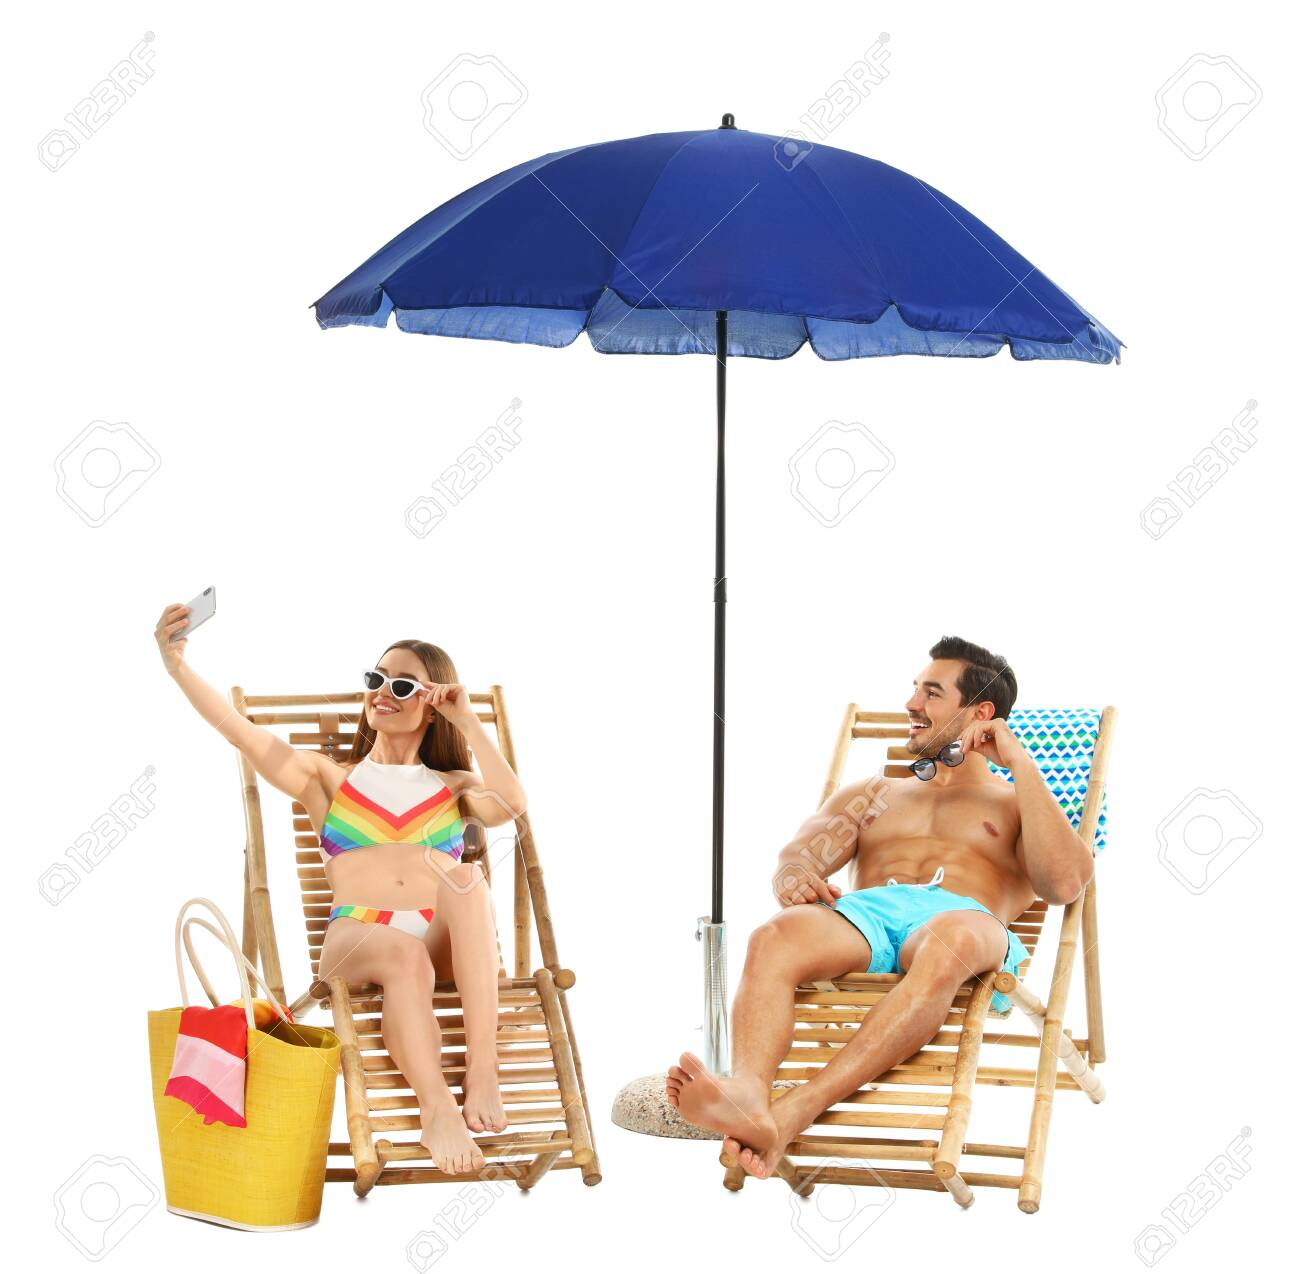 Young couple taking selfie on sun loungers under umbrella against white background. Beach accessories - 128057620